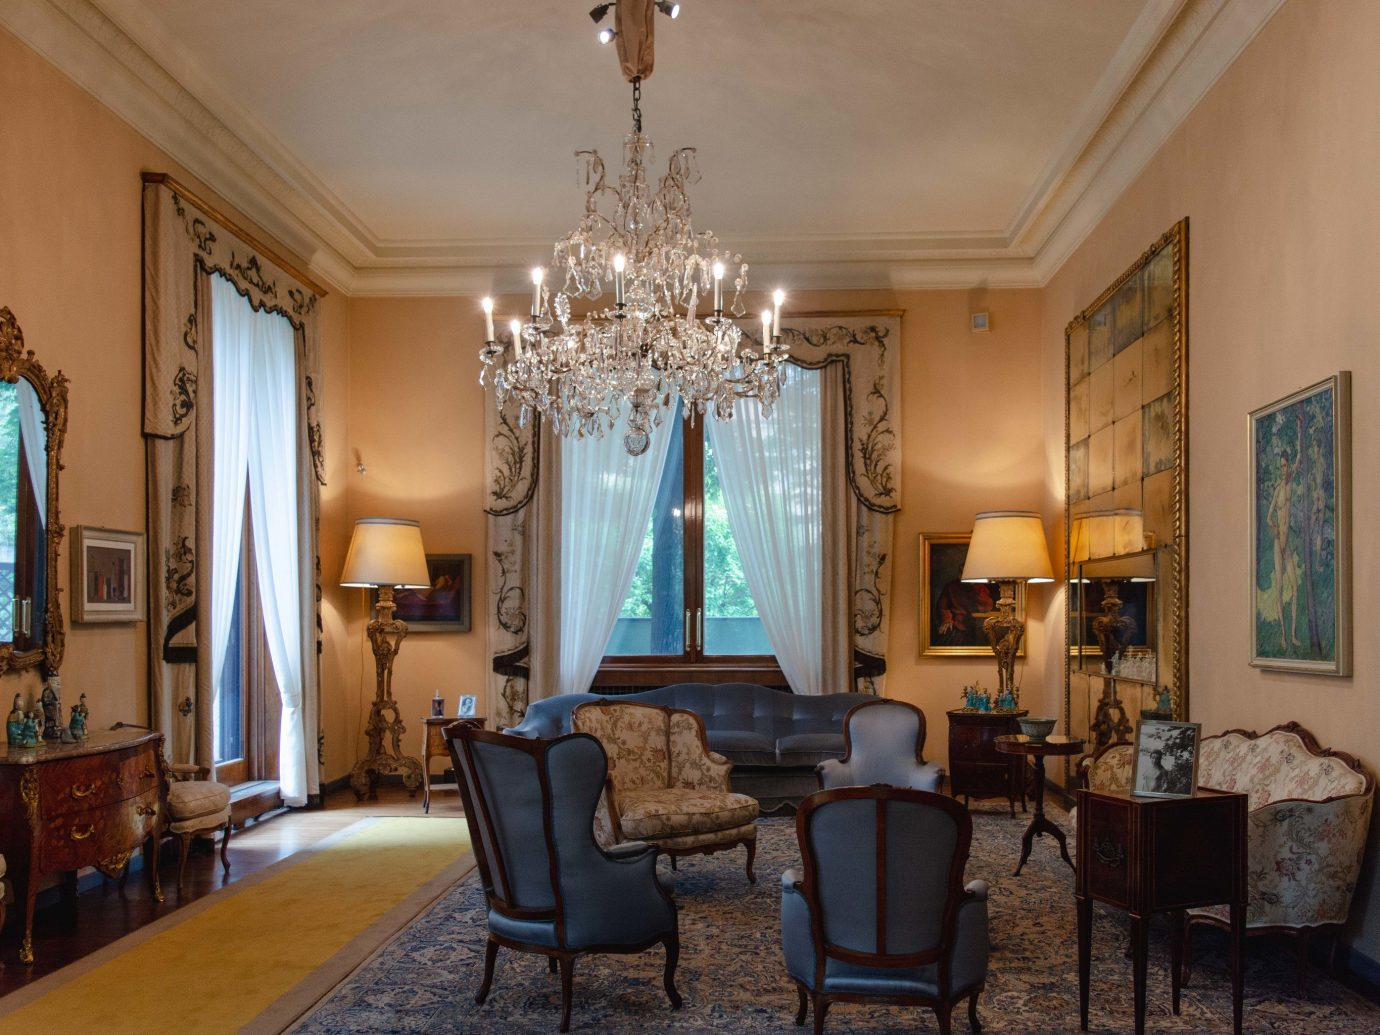 Arts + Culture Italy Milan indoor room floor wall Living ceiling chair living room property interior design furniture dining room real estate home estate window Suite house area apartment decorated